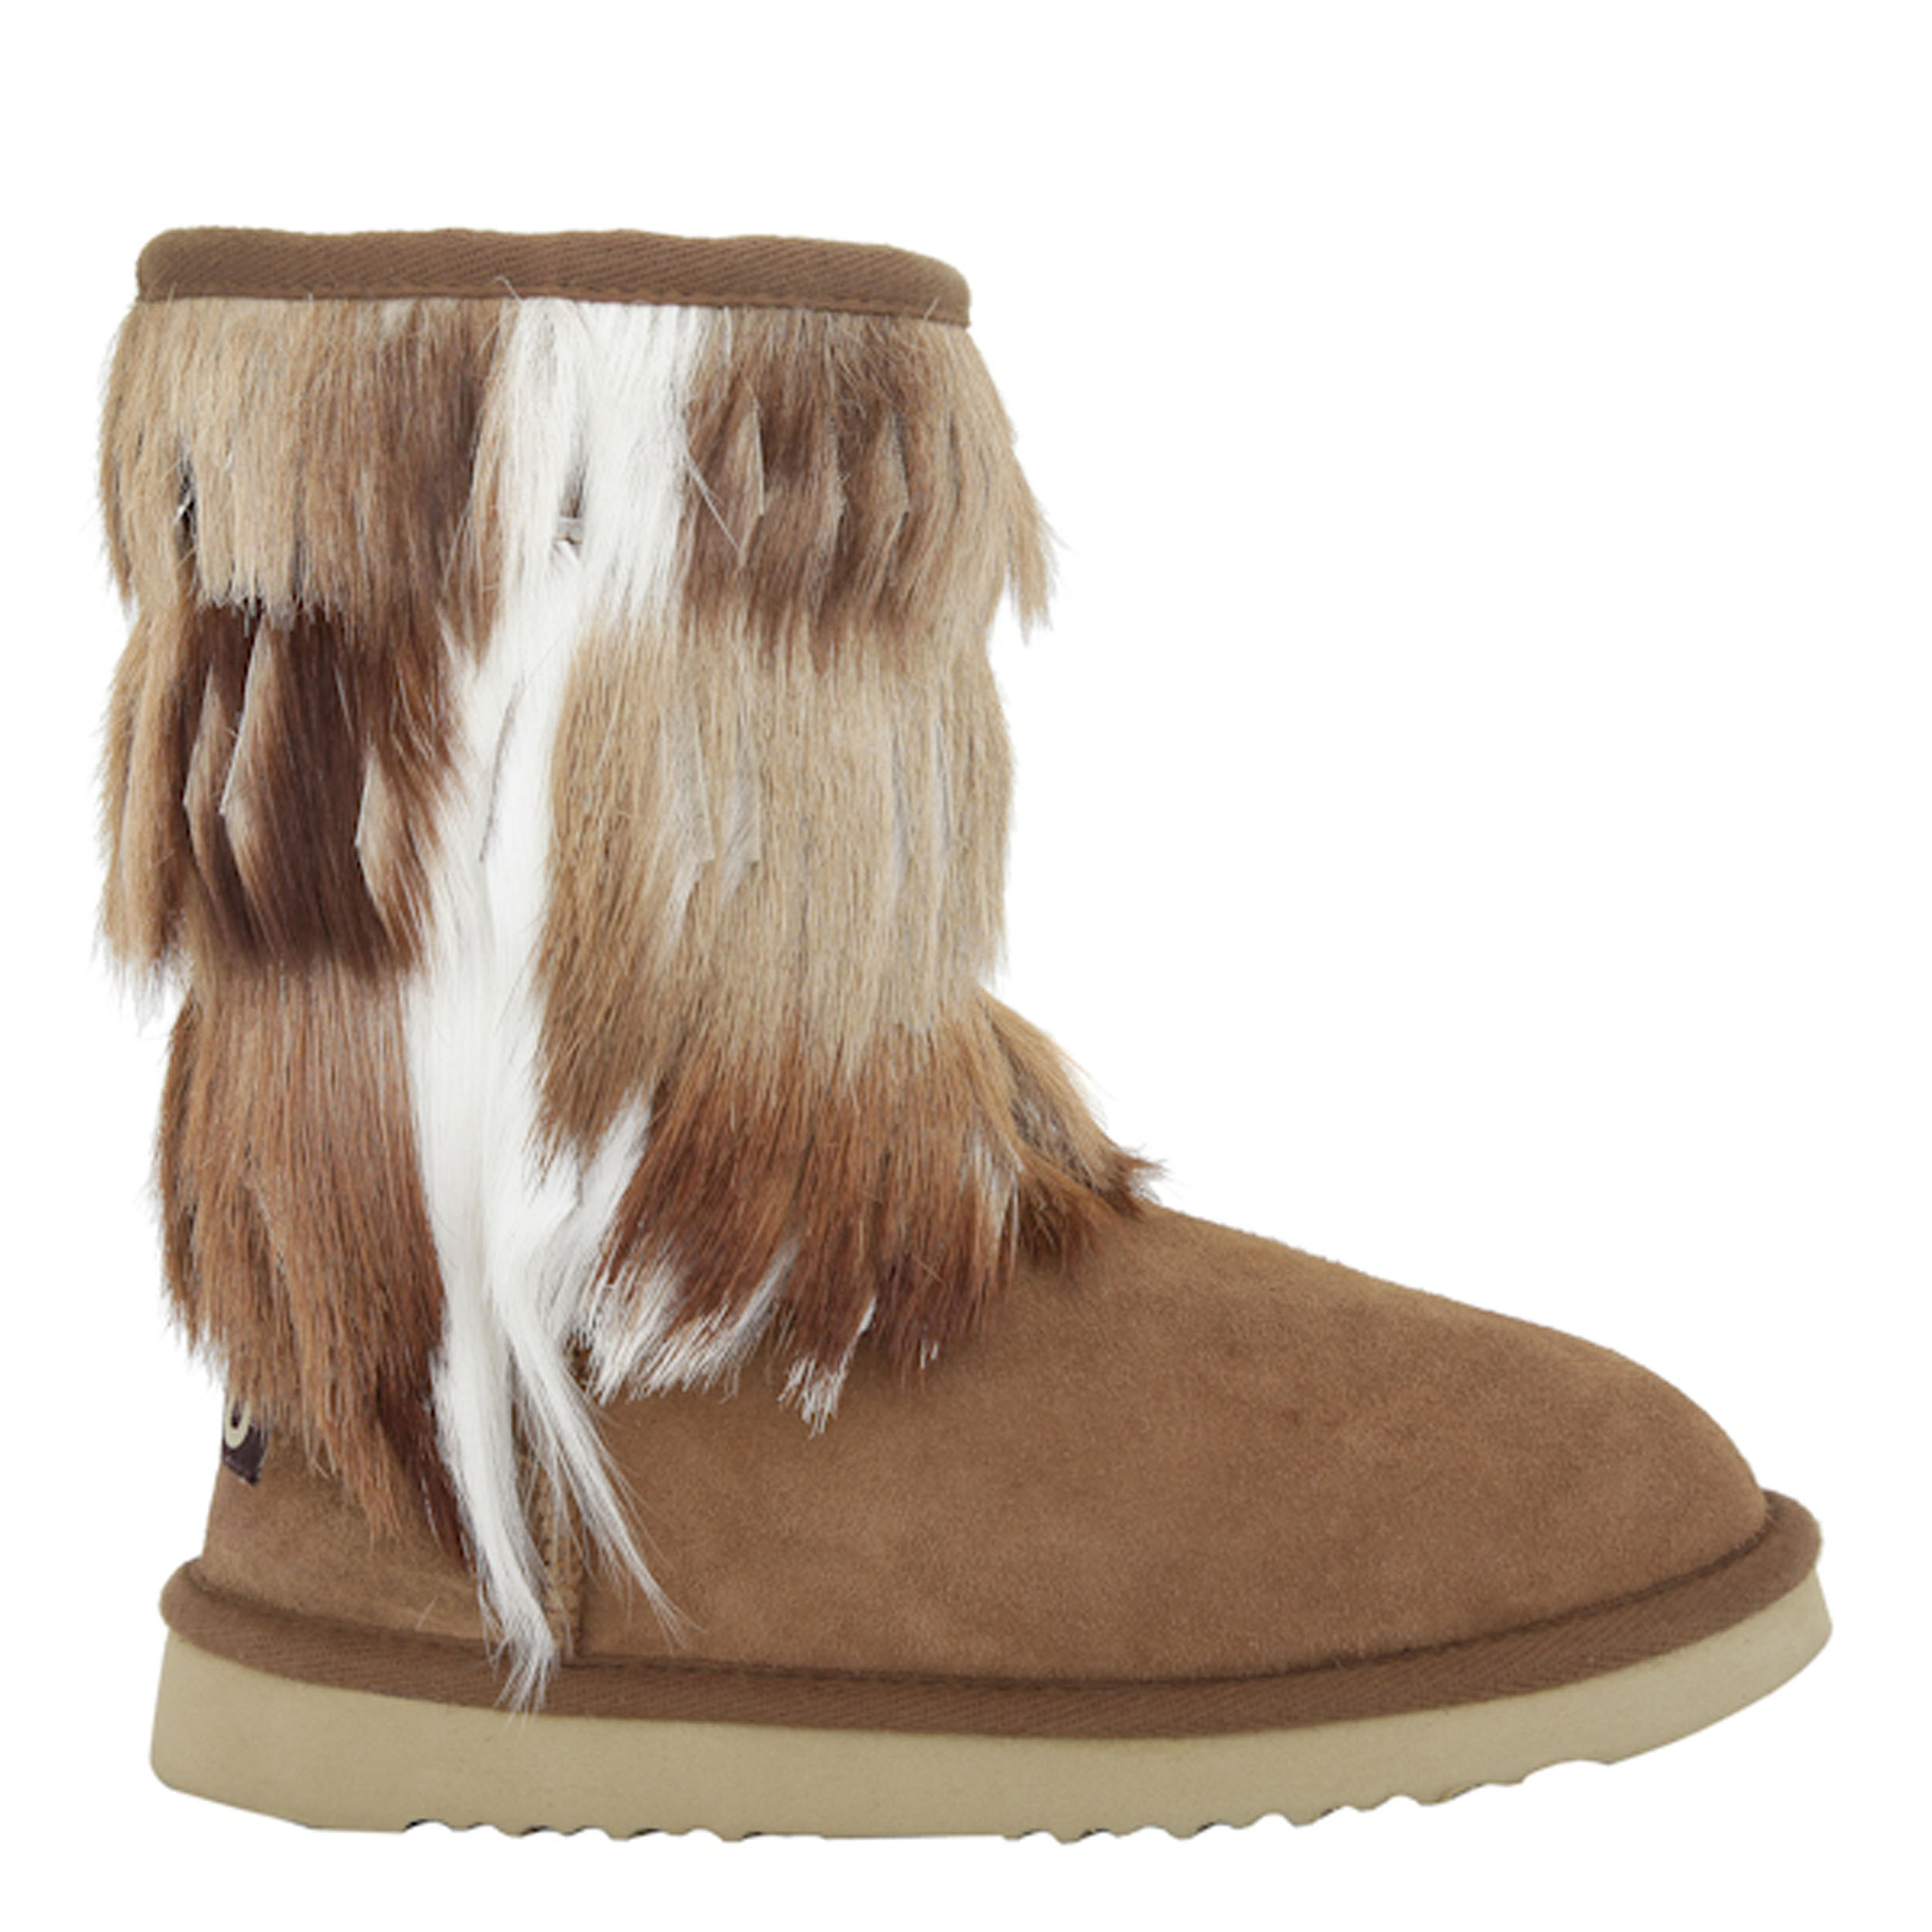 Mou Antelope Fringed Cowboy Boot Chestnut With Sprinbok Fringes £305